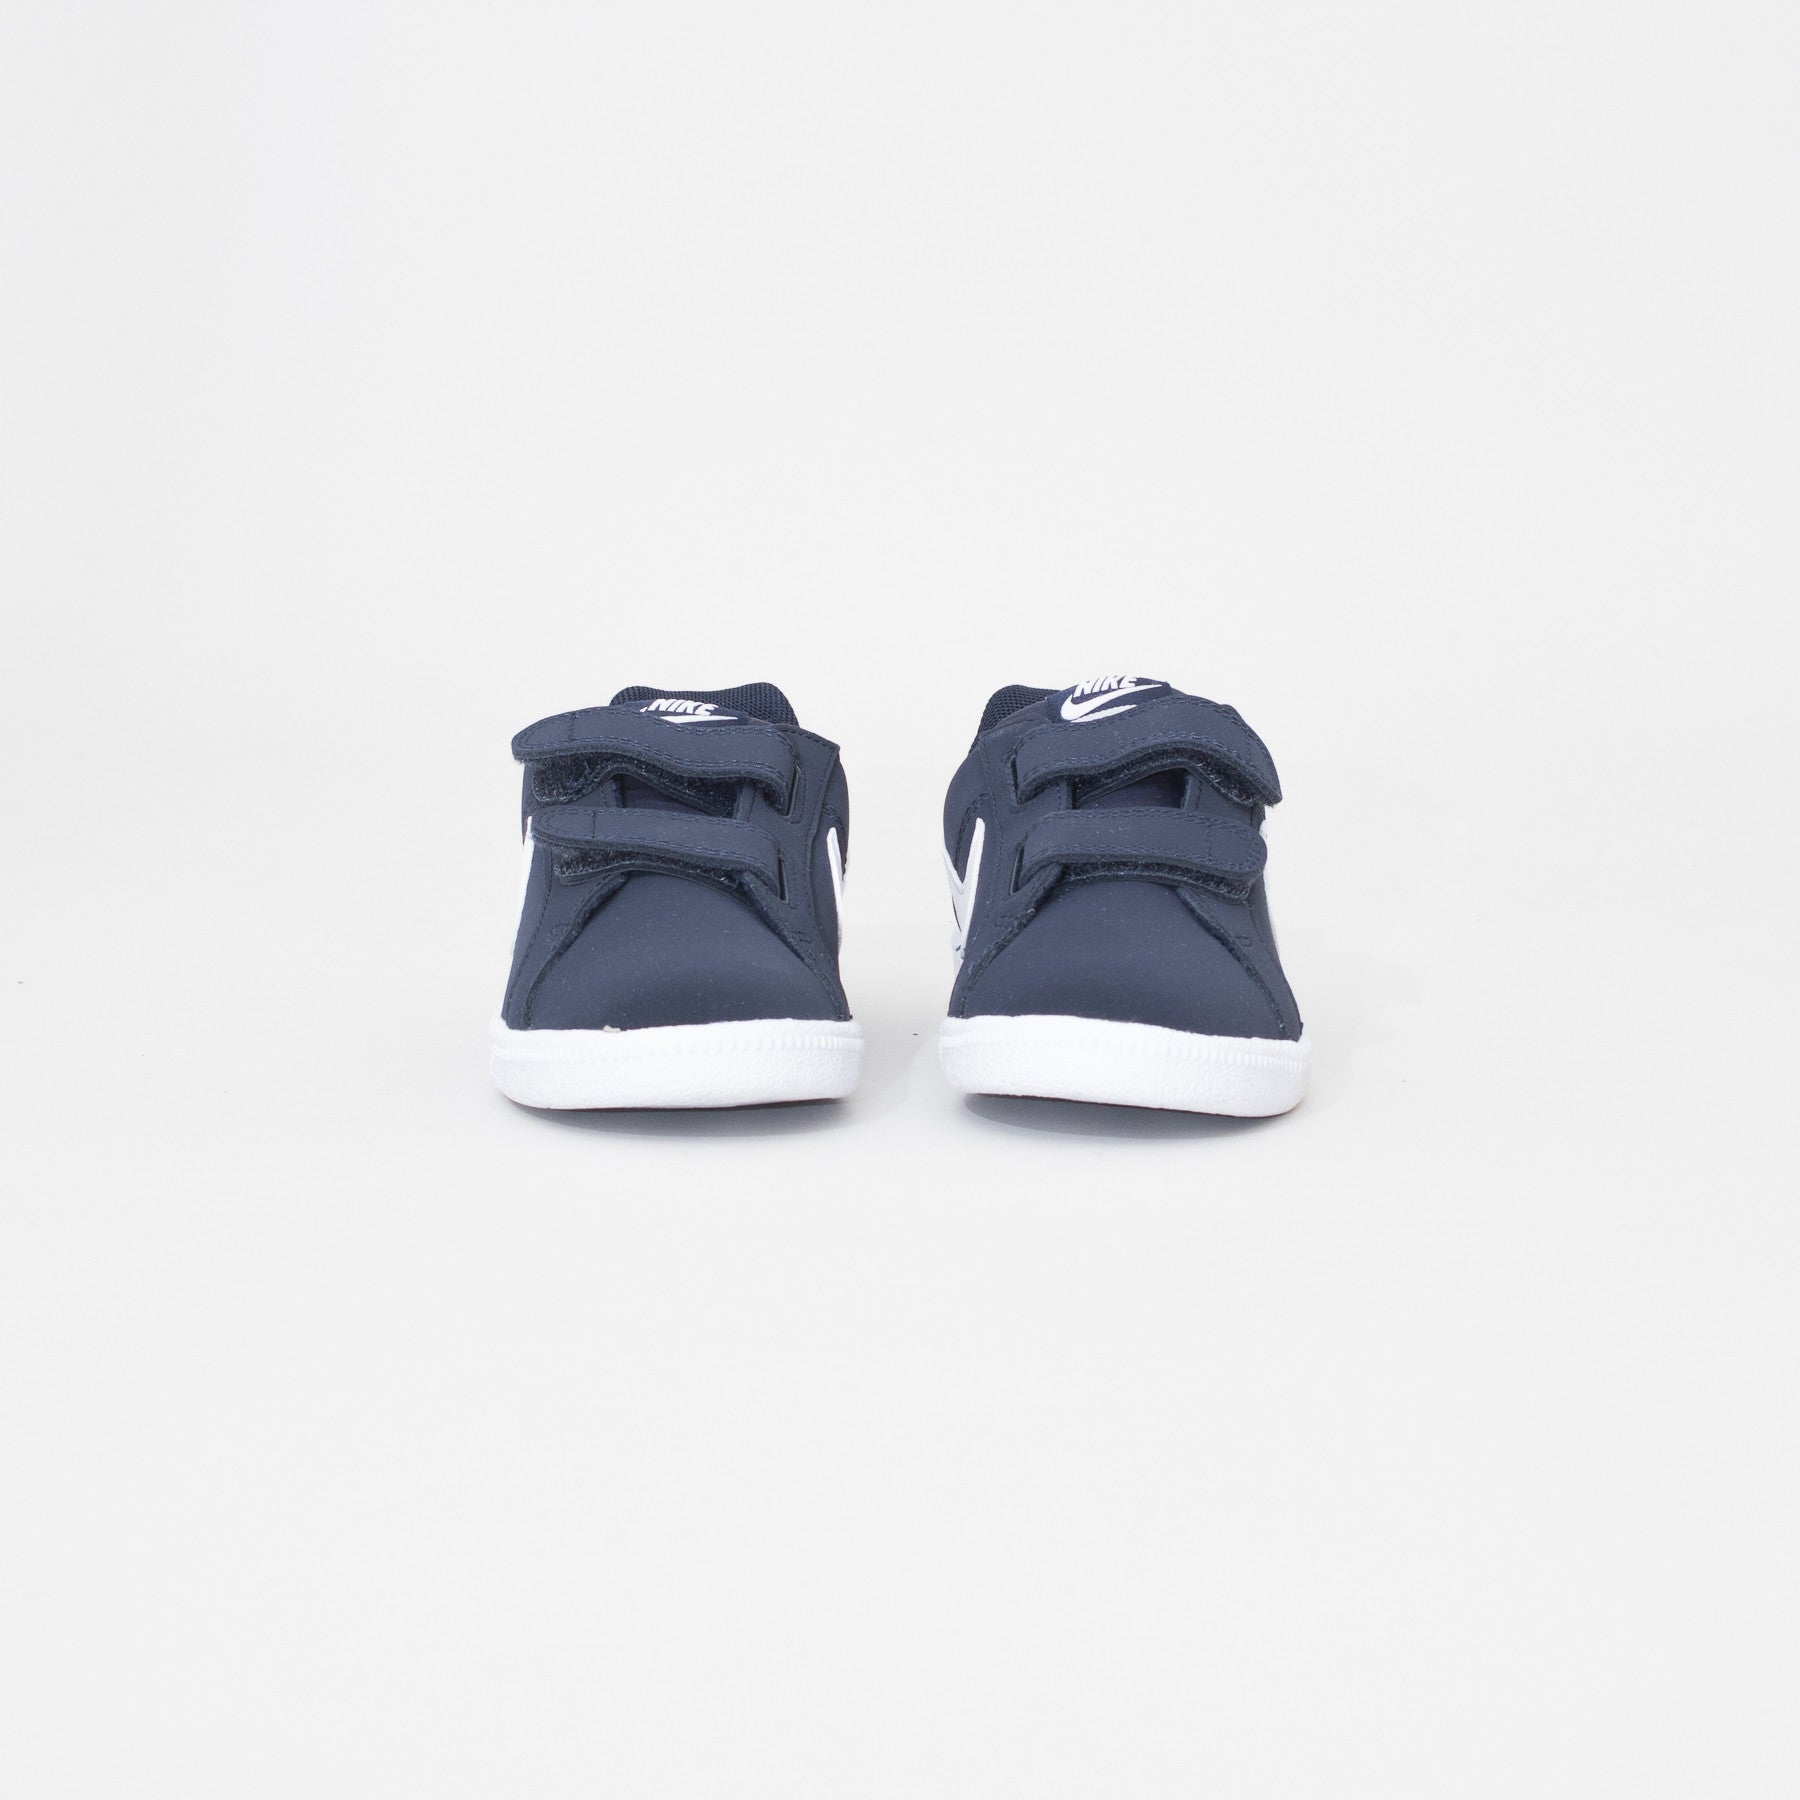 Court royale kids - obsidian/white - KID - 3